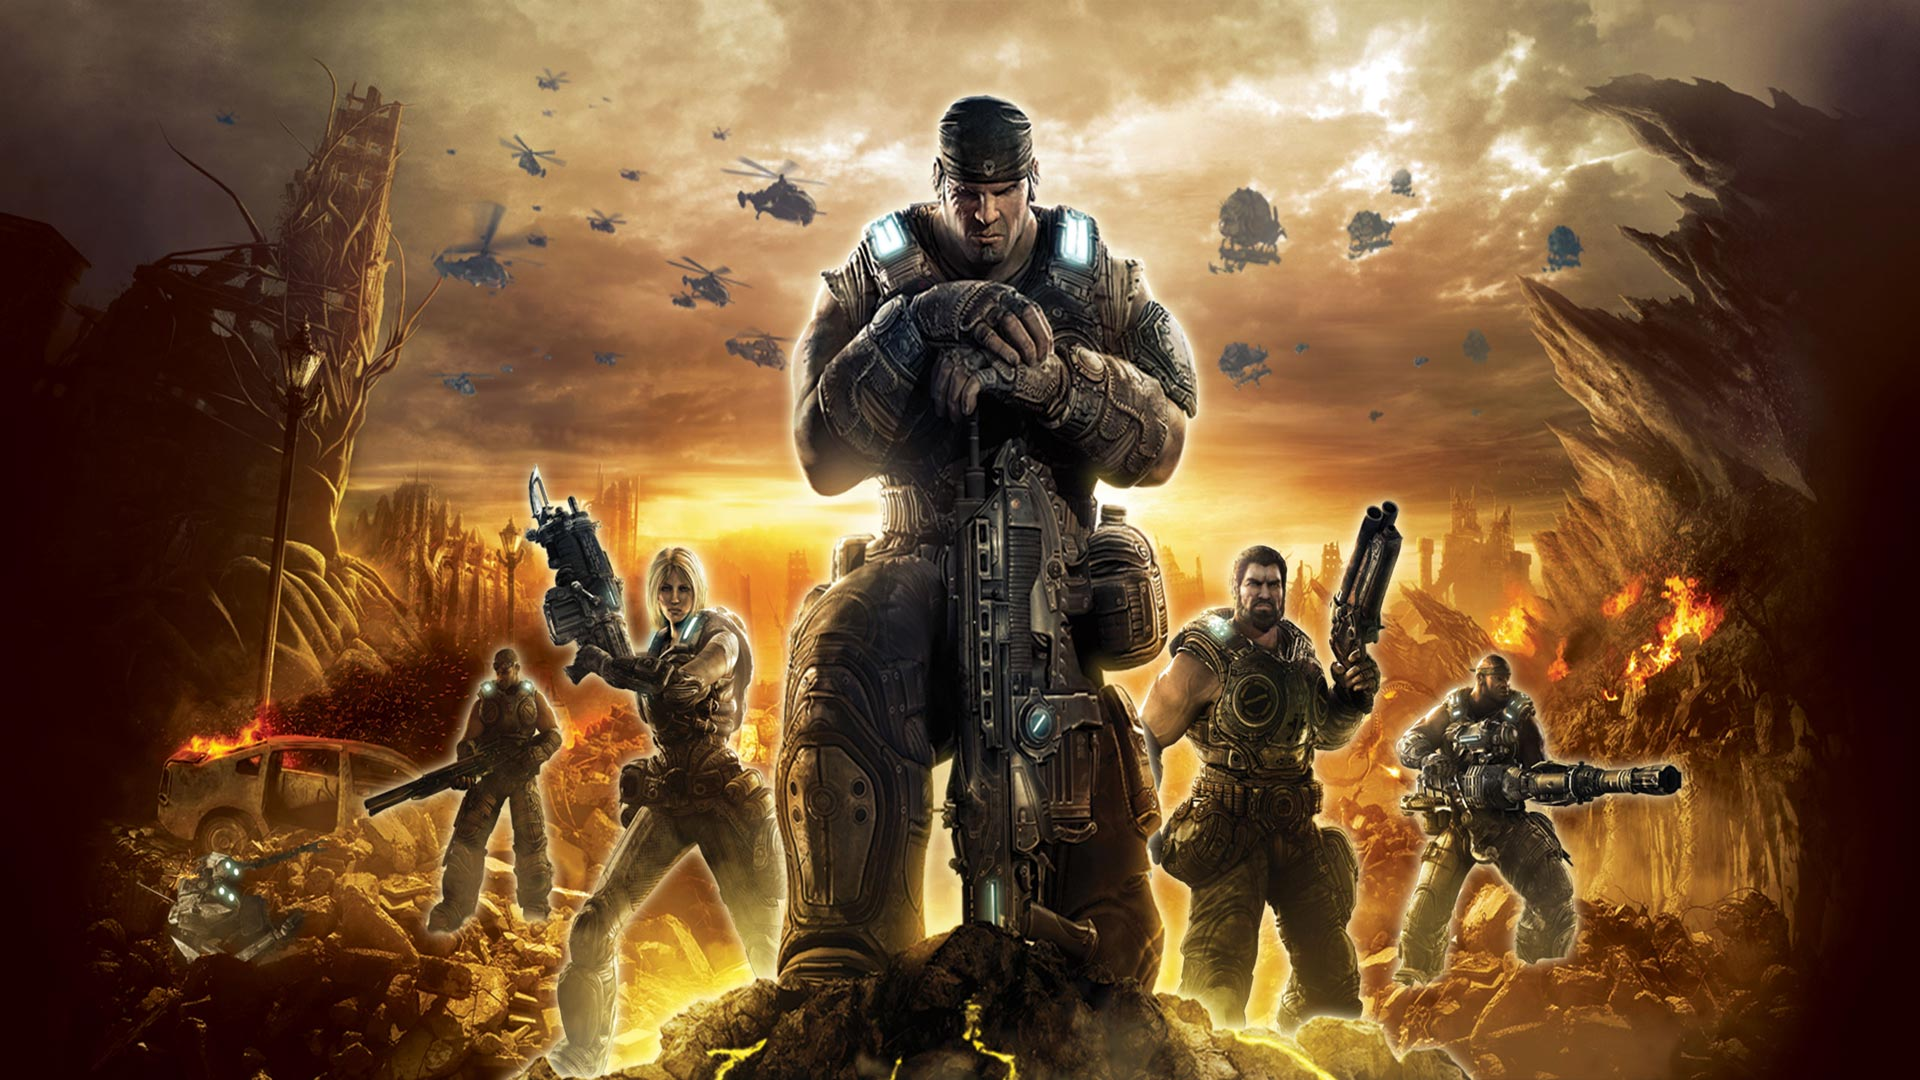 Gears Of War 3 Wallpapers: Gears Of War Backgrounds